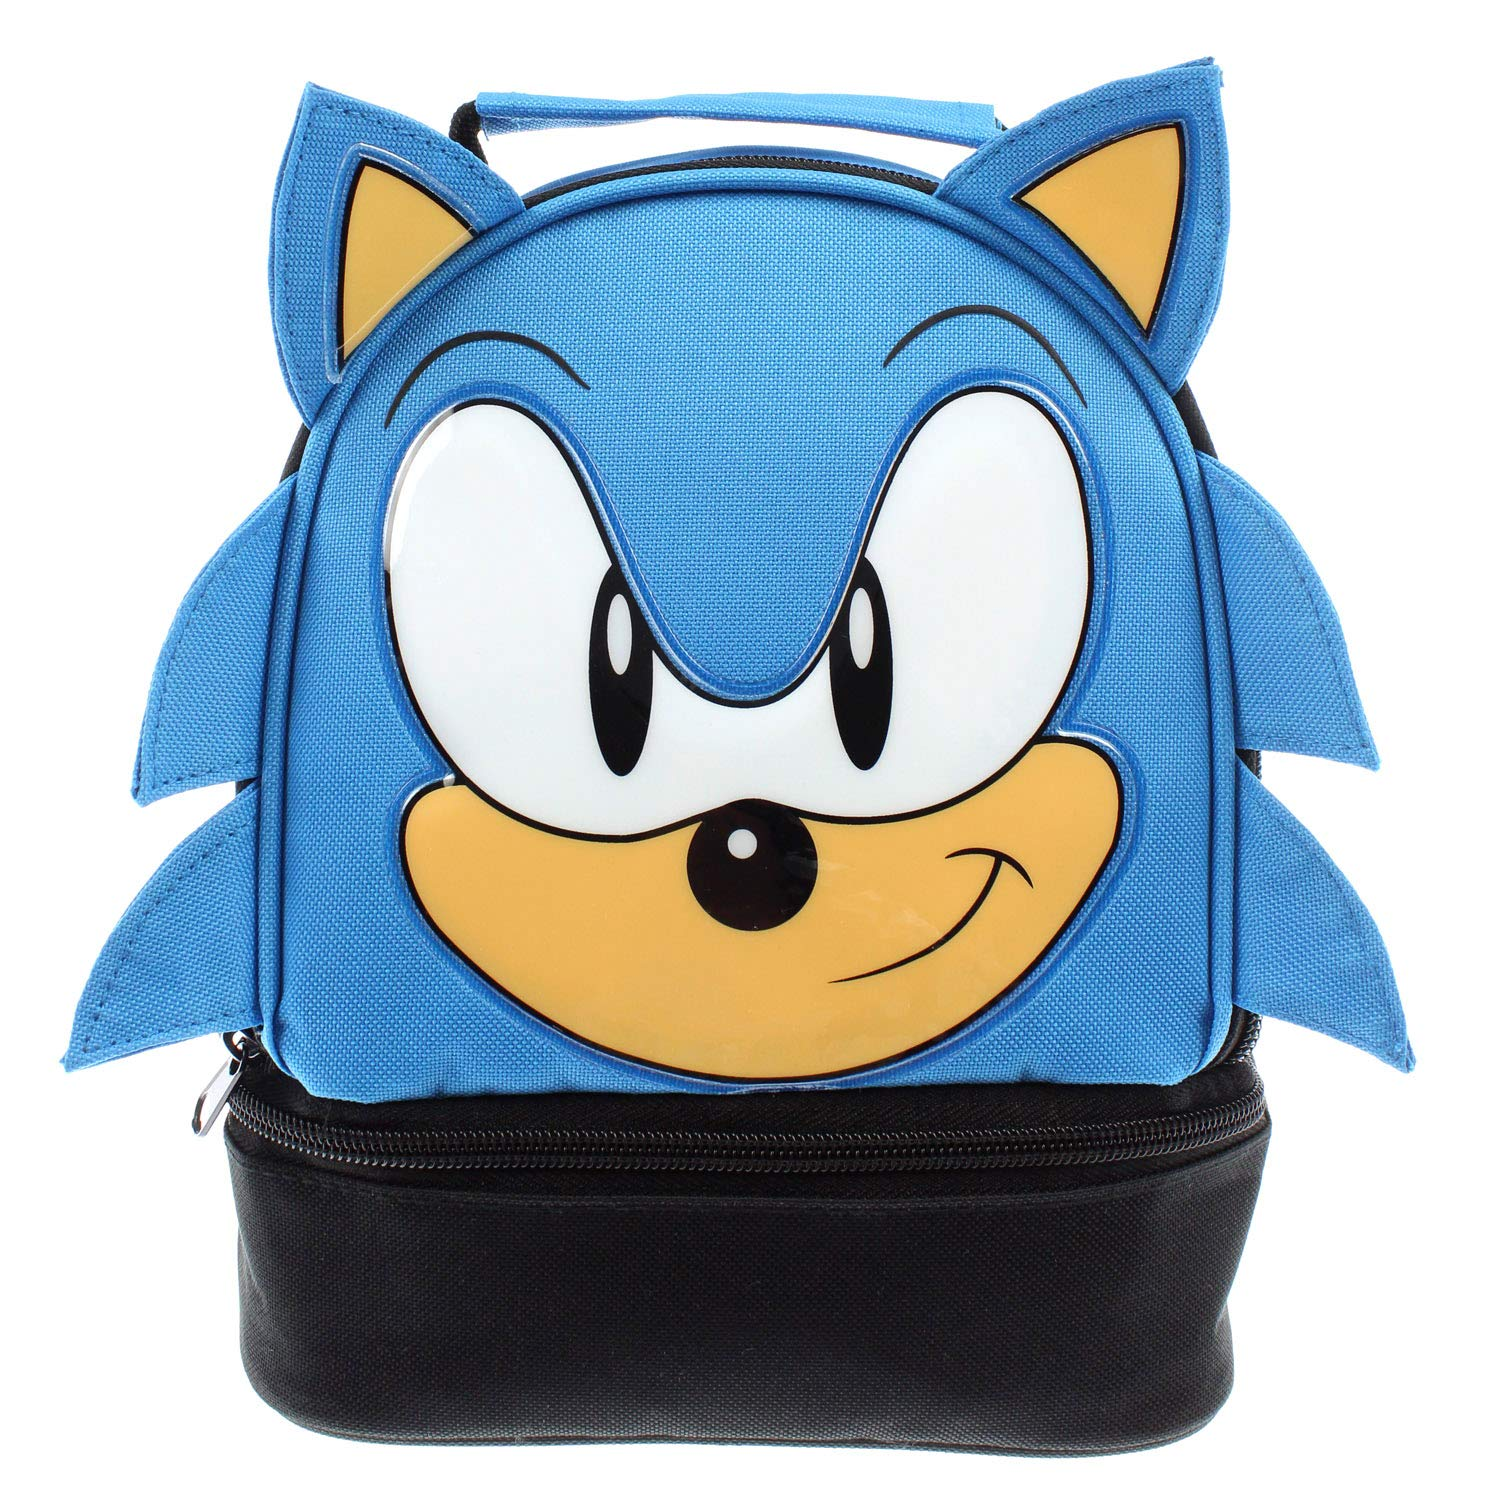 Sega Sonic the Hedgehog Lunch Bag Big Face Dual Compartment Lunch Box Kit Bioworld